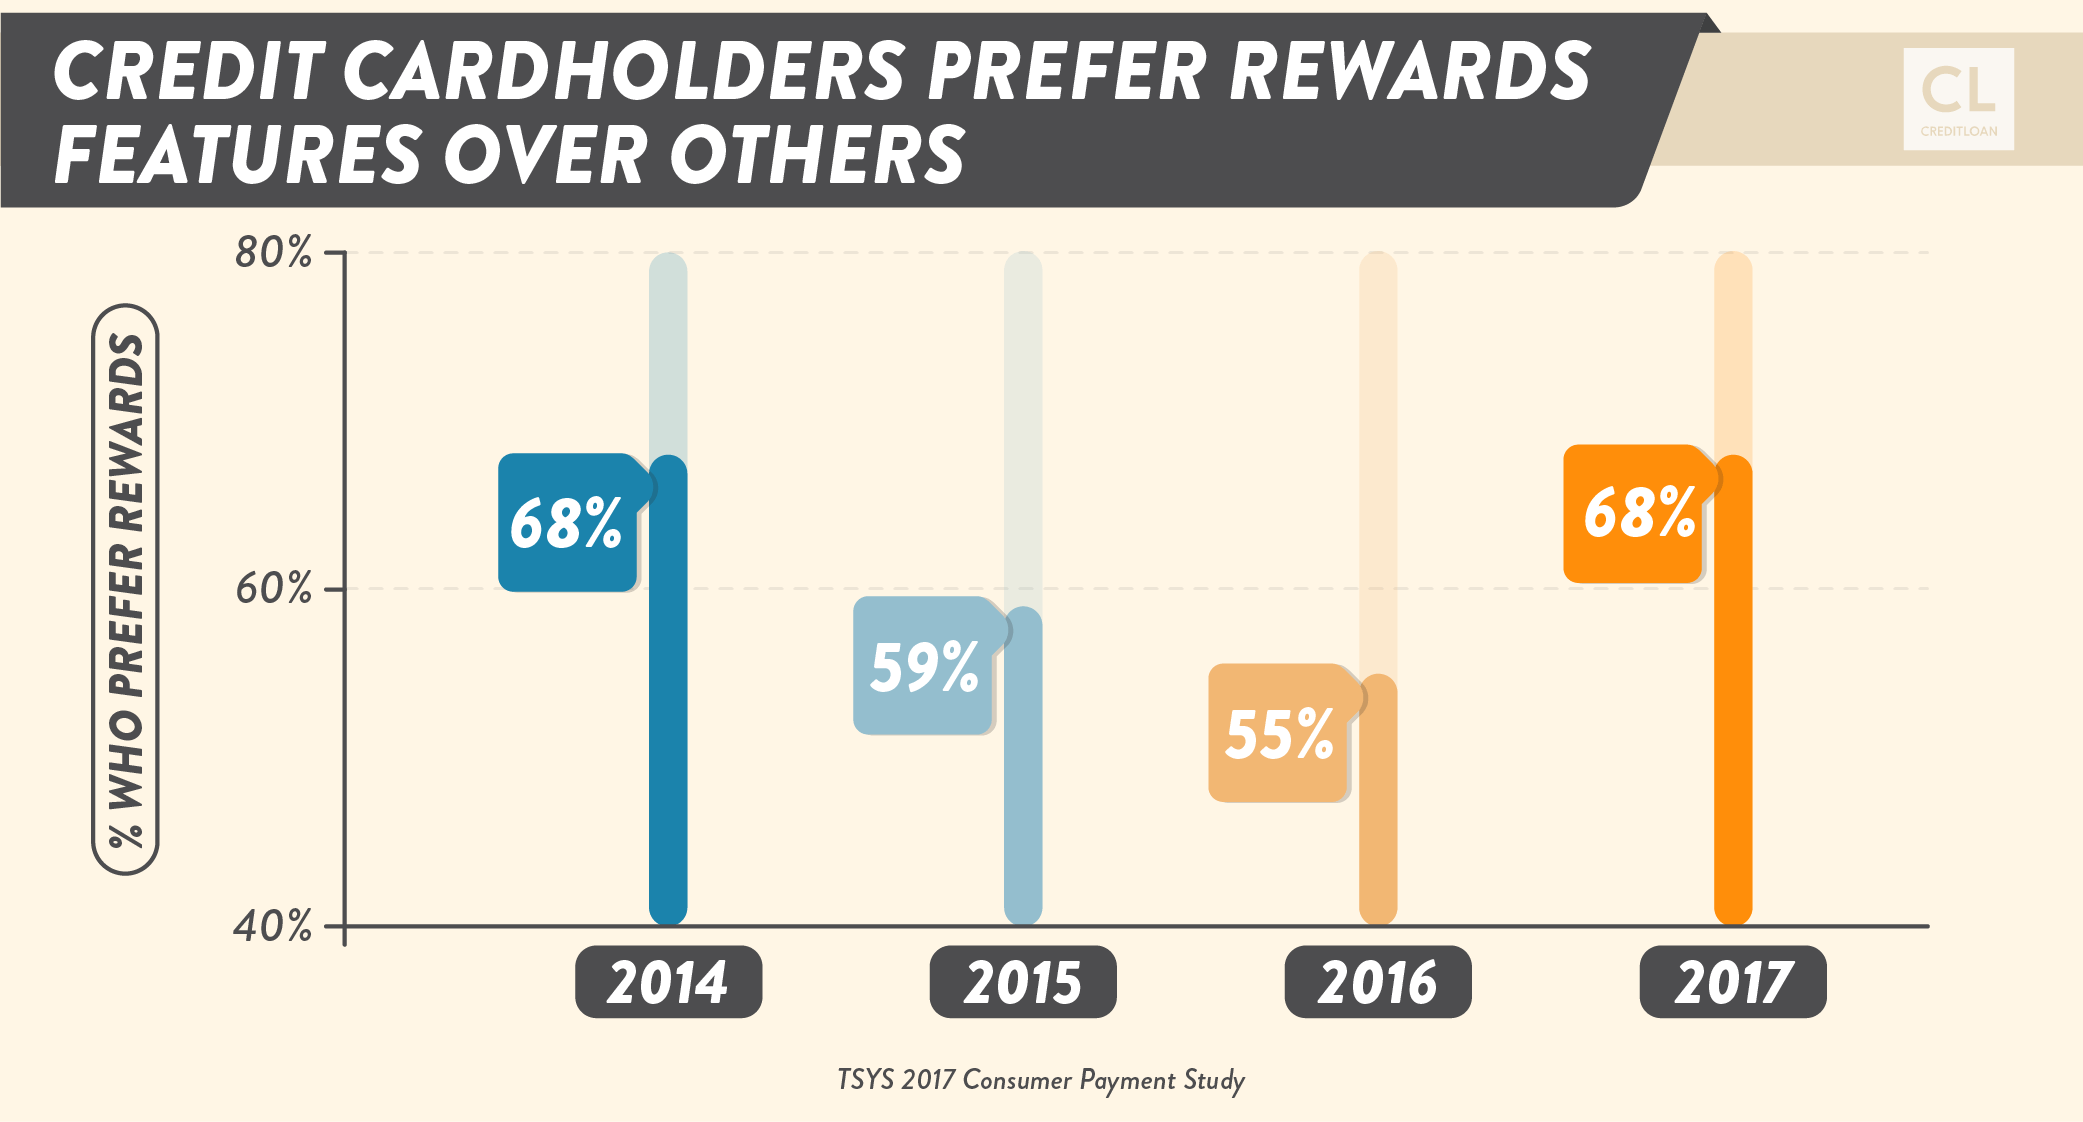 Credit Cardholders Prefer Rewards Features Over Others